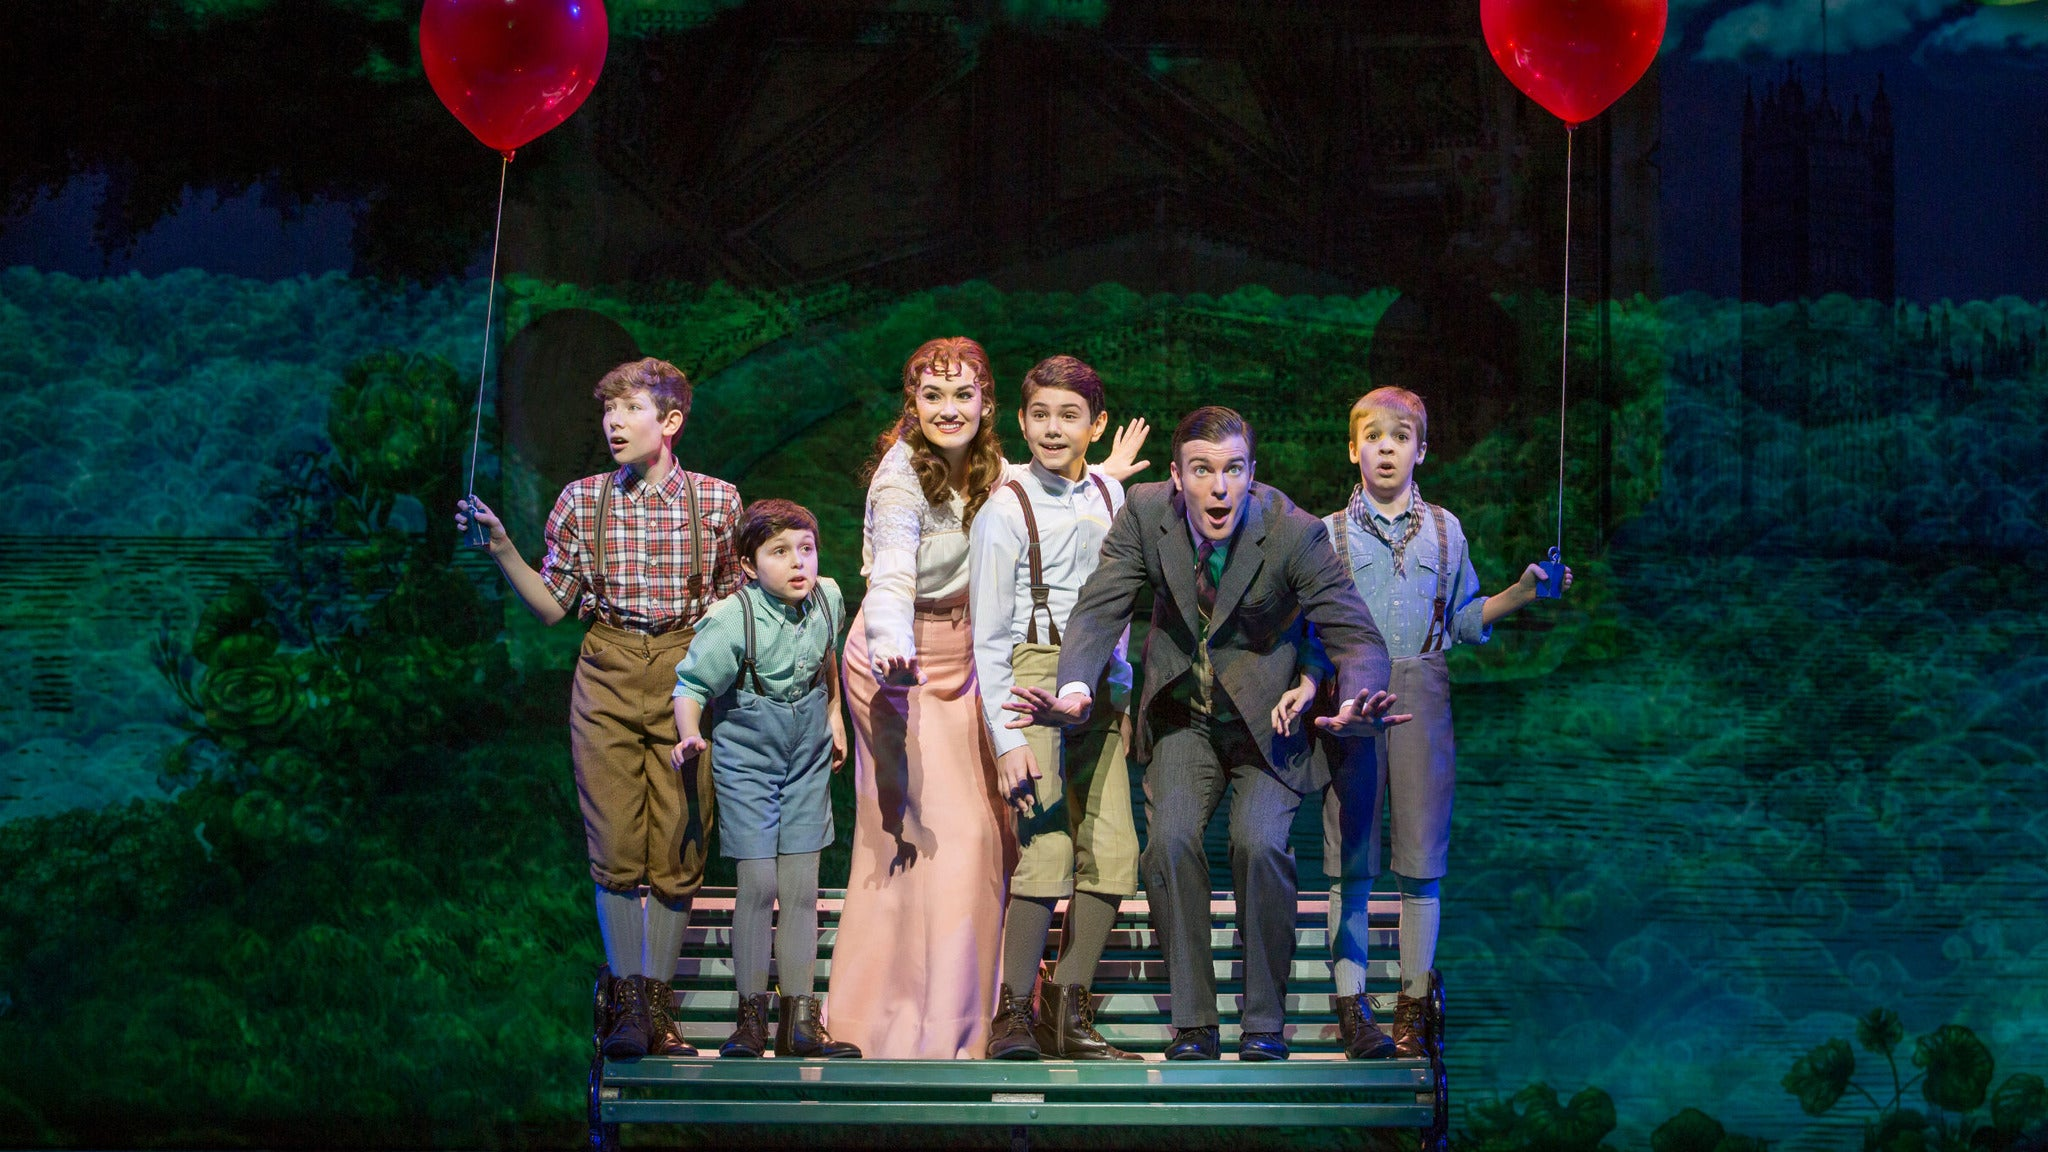 Finding Neverland at San Jose Center for the Performing Arts - San Jose, CA 95113